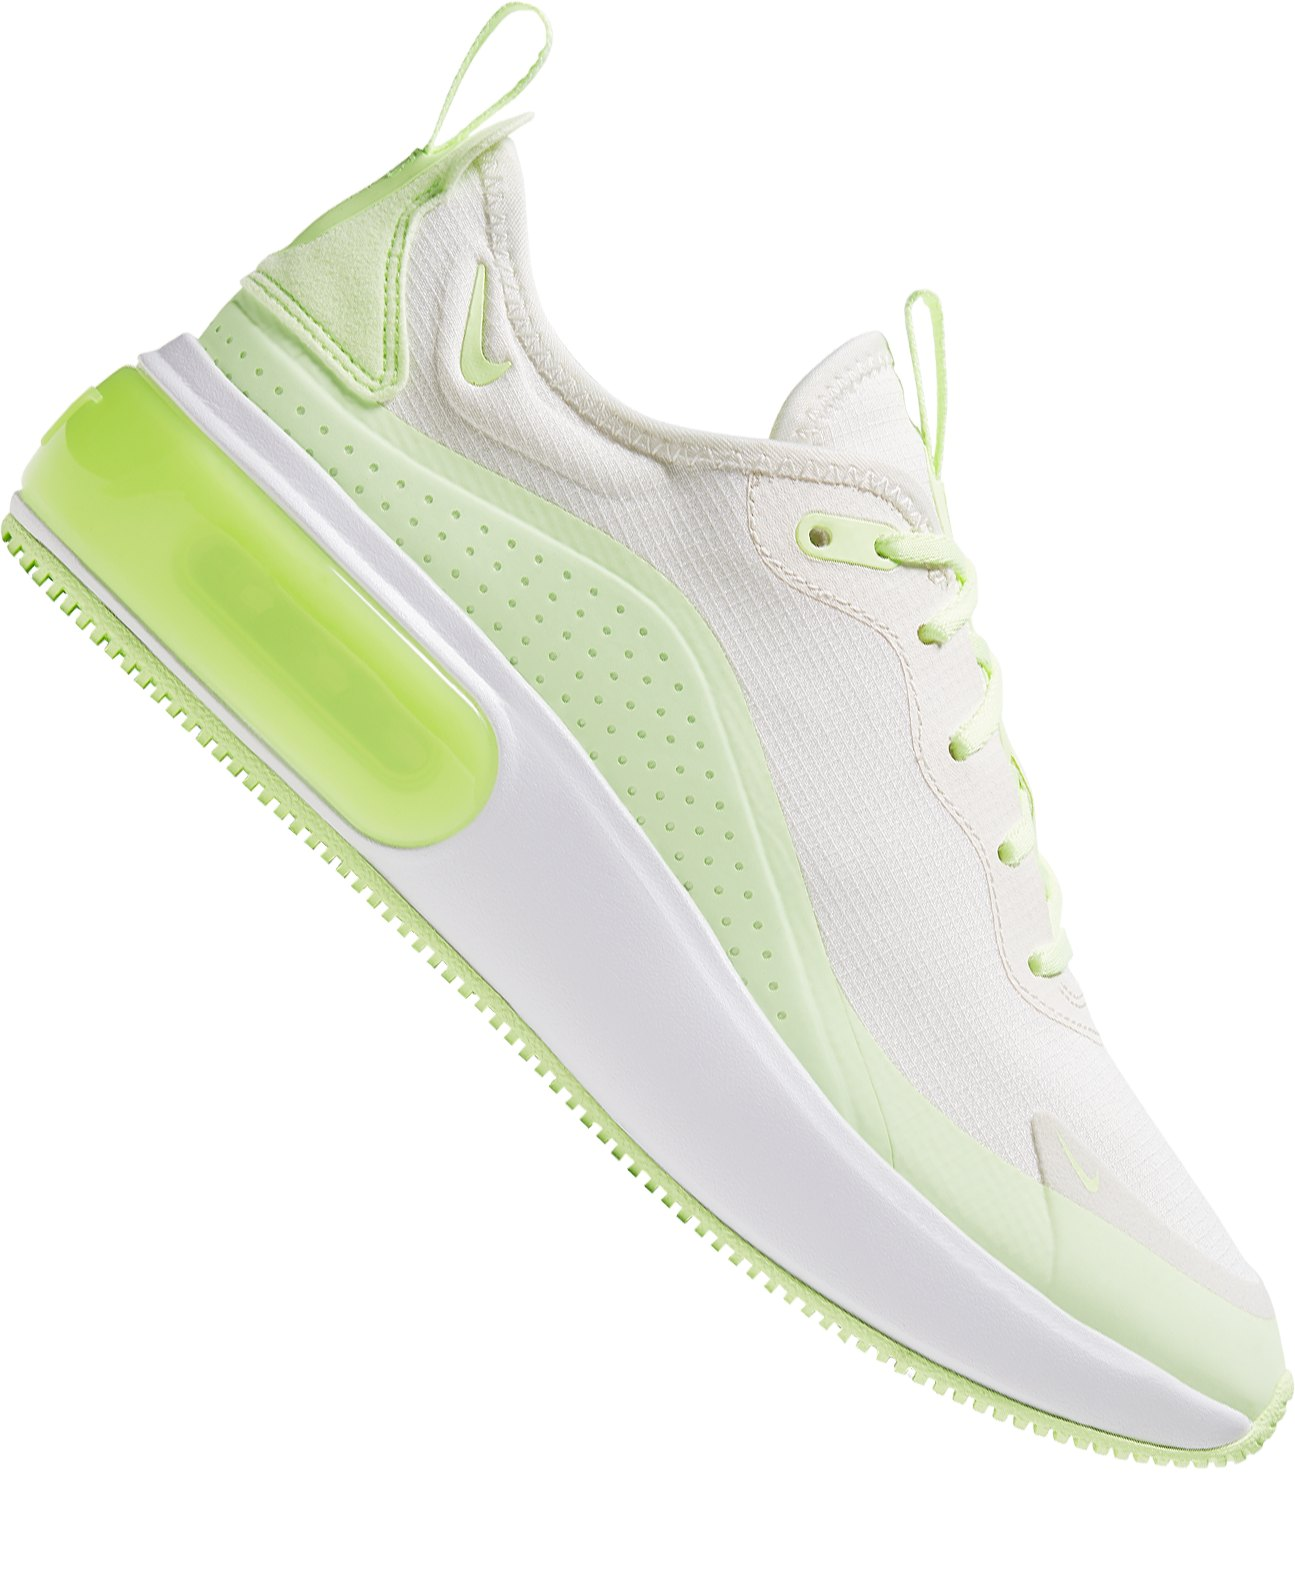 brand new look good shoes sale reliable quality Nike